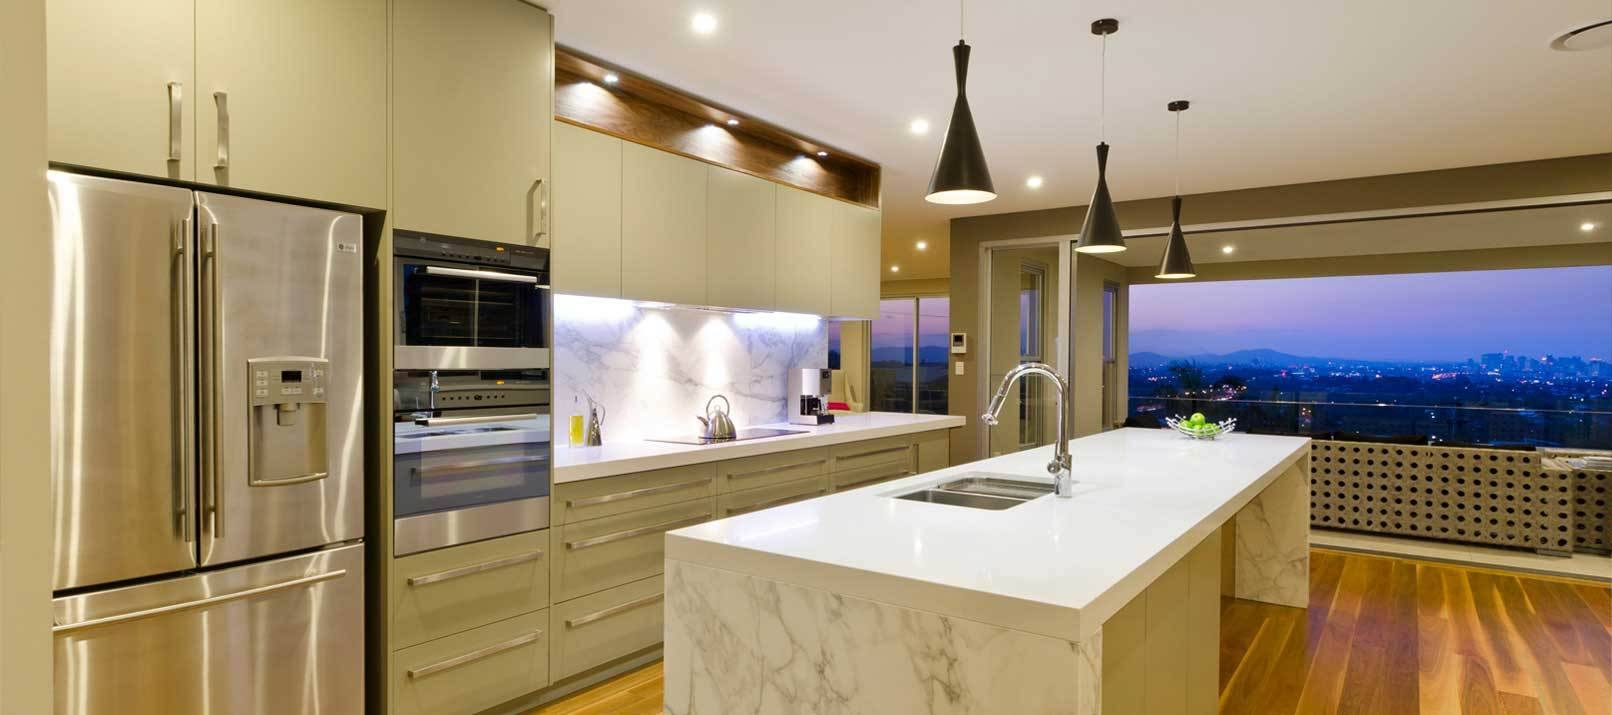 How to effectively plan your new kitchen designer kitchens - Images of kitchens ...